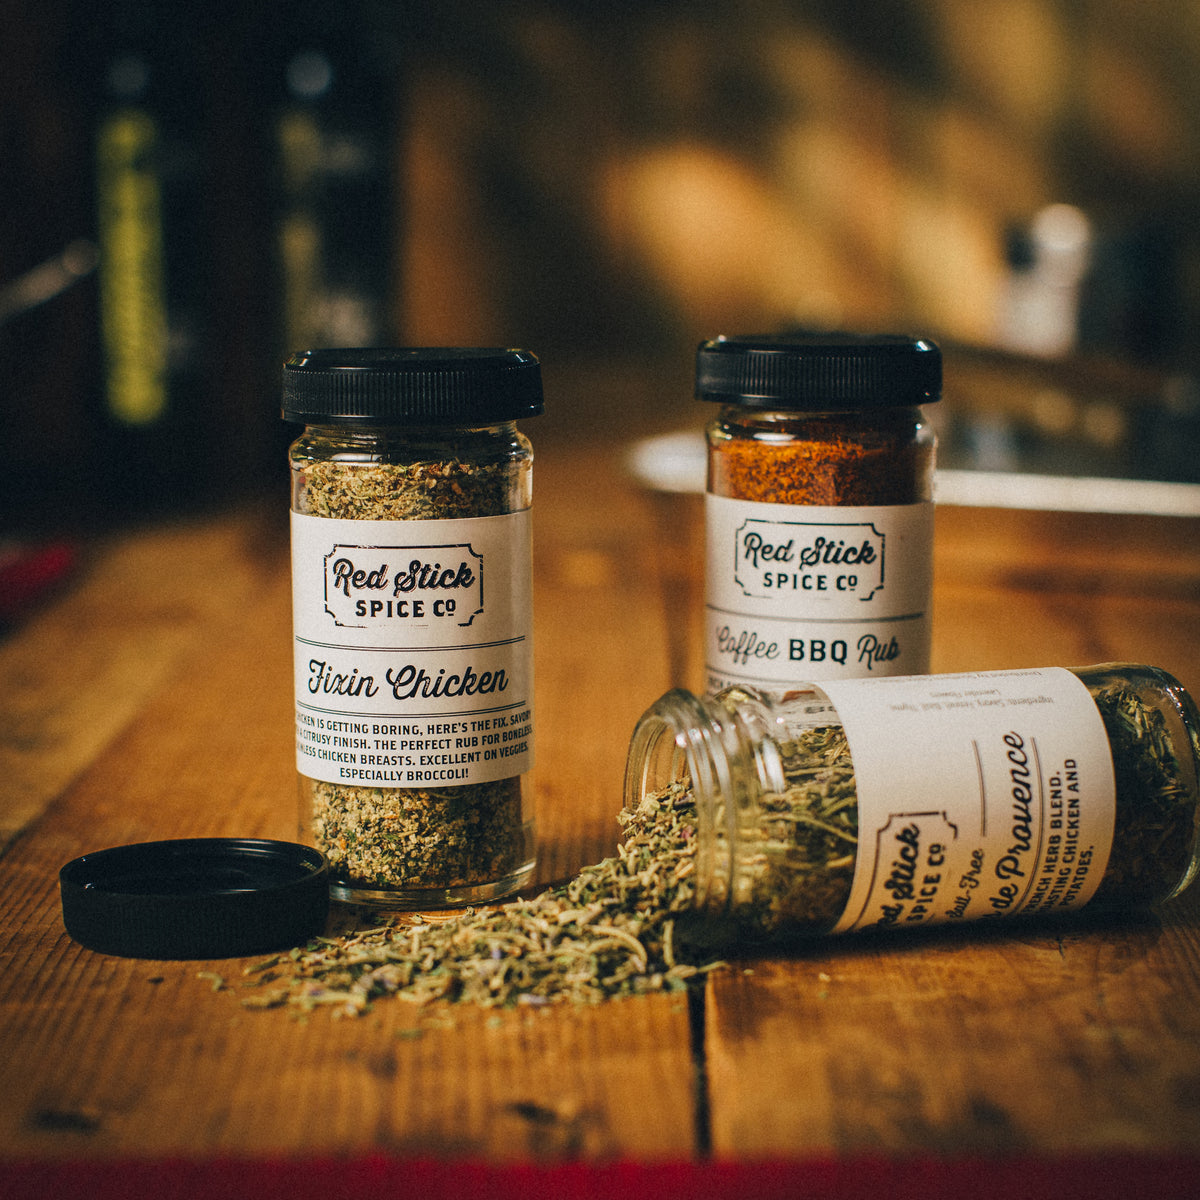 Capital Heights Spice - Spice Blends - Red Stick Spice Company